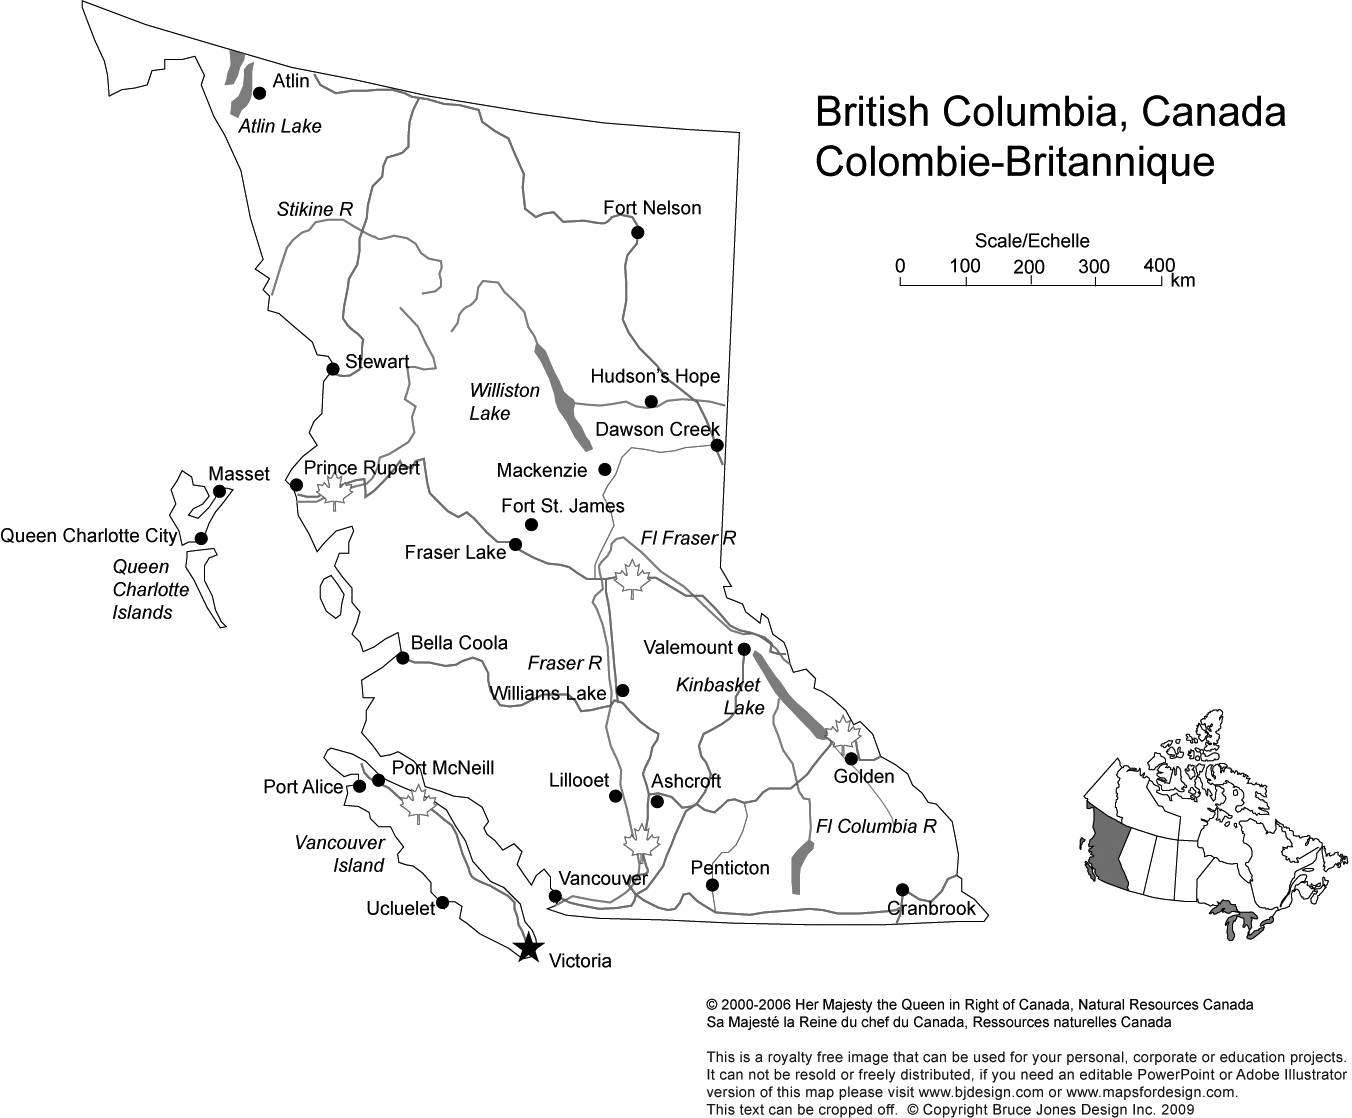 Map Of Canada With City Names.Canada And Provinces Printable Blank Maps Royalty Free Canadian